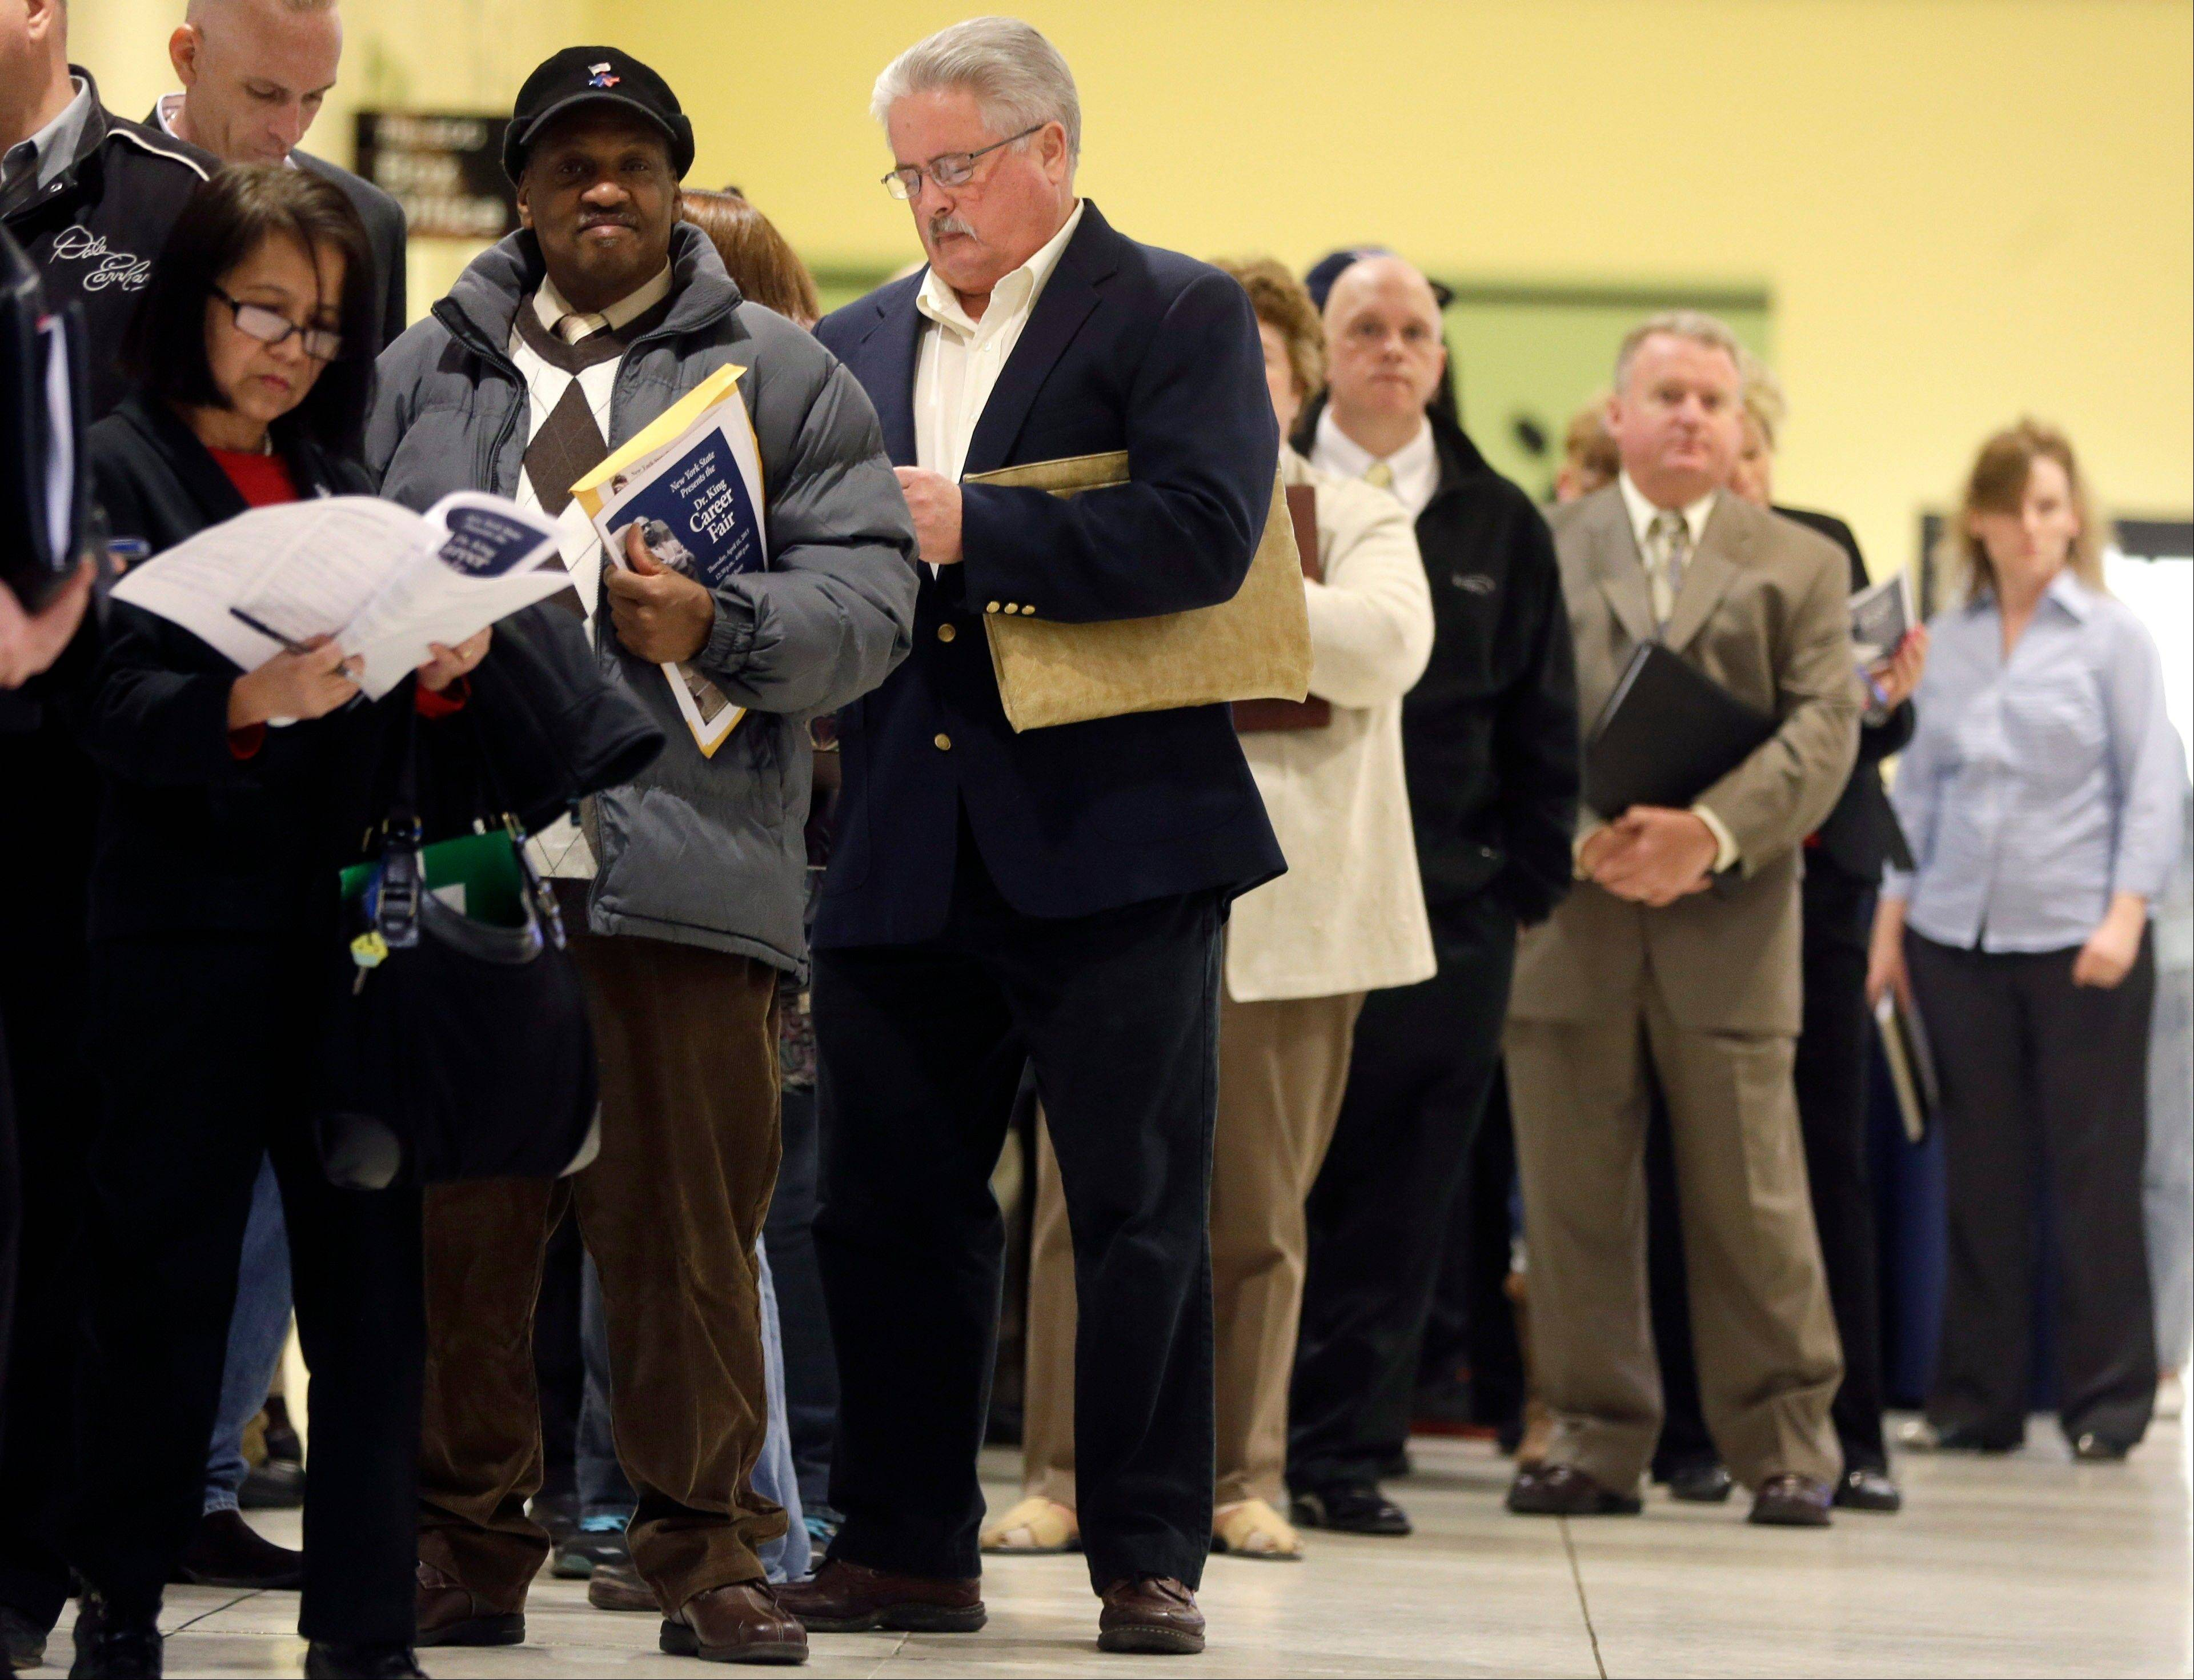 People wait in line before the Dr. King Career Fair at the Empire State Plaza Convention Center in Albany, N.Y. The government issues the April jobs report today.